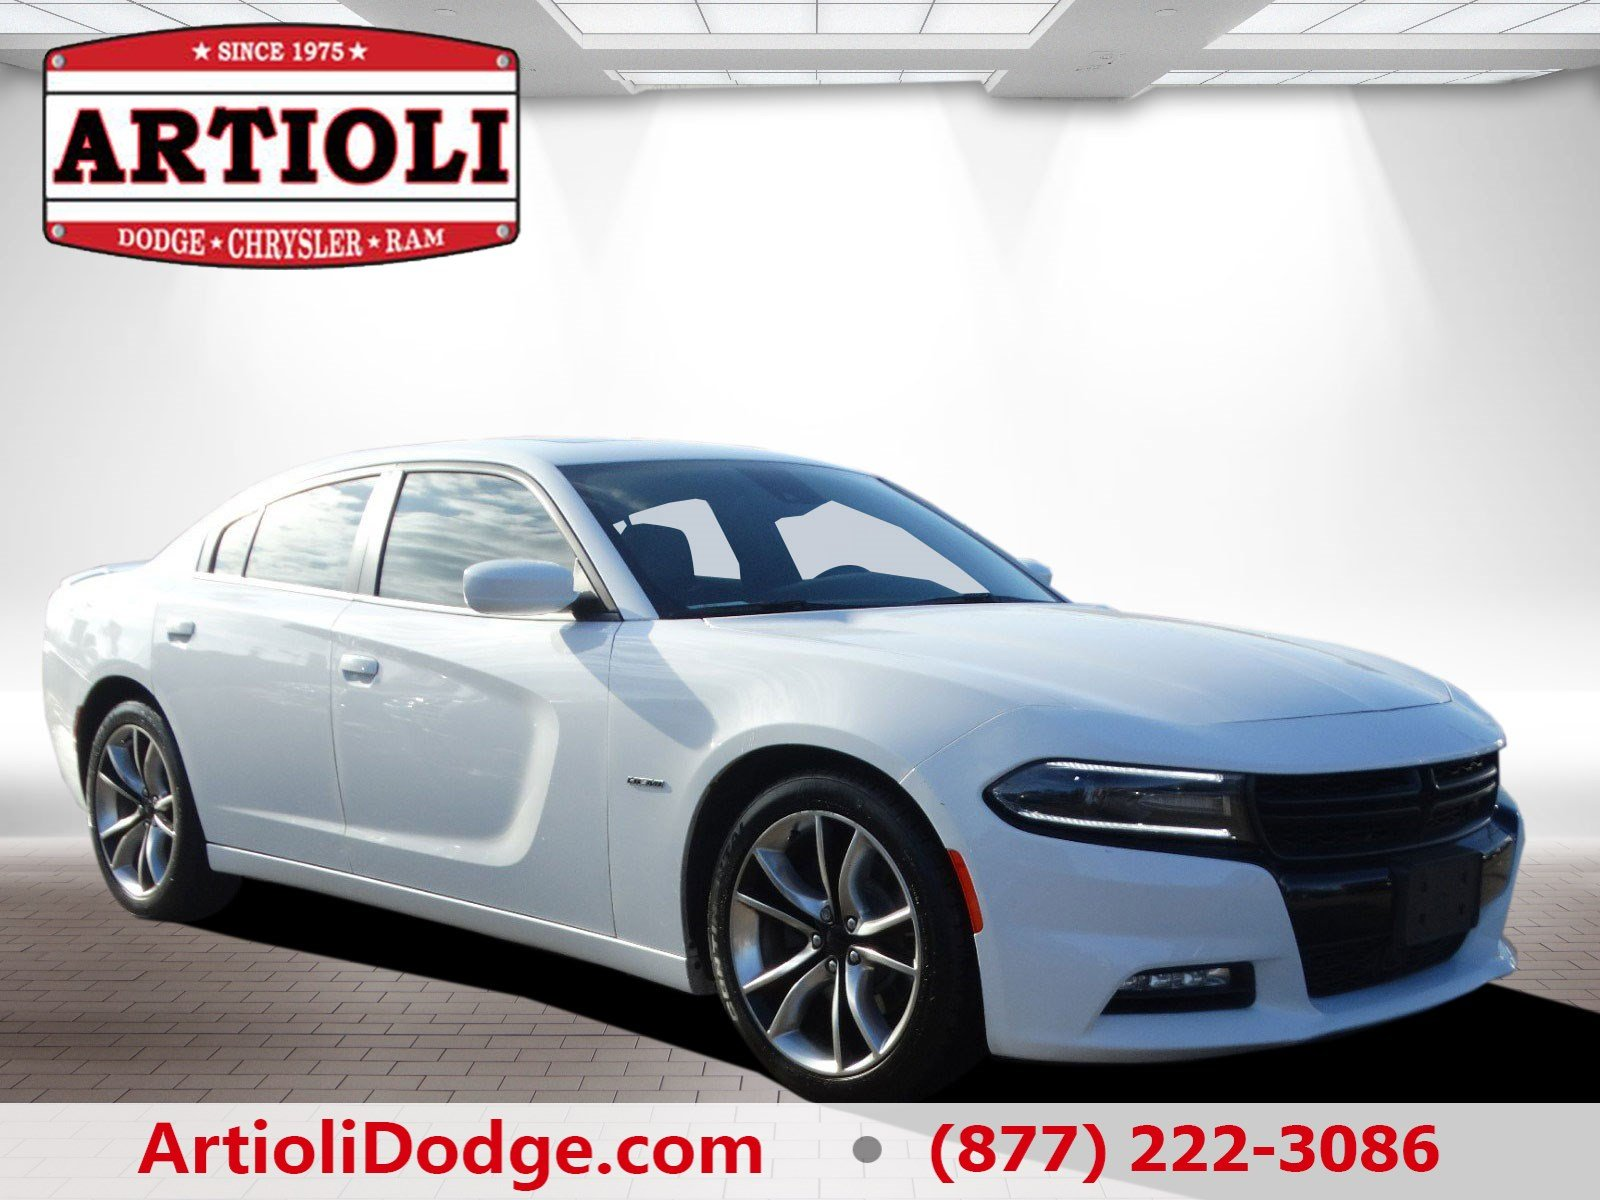 Certified Pre-Owned 2015 Dodge Charger Road/Track